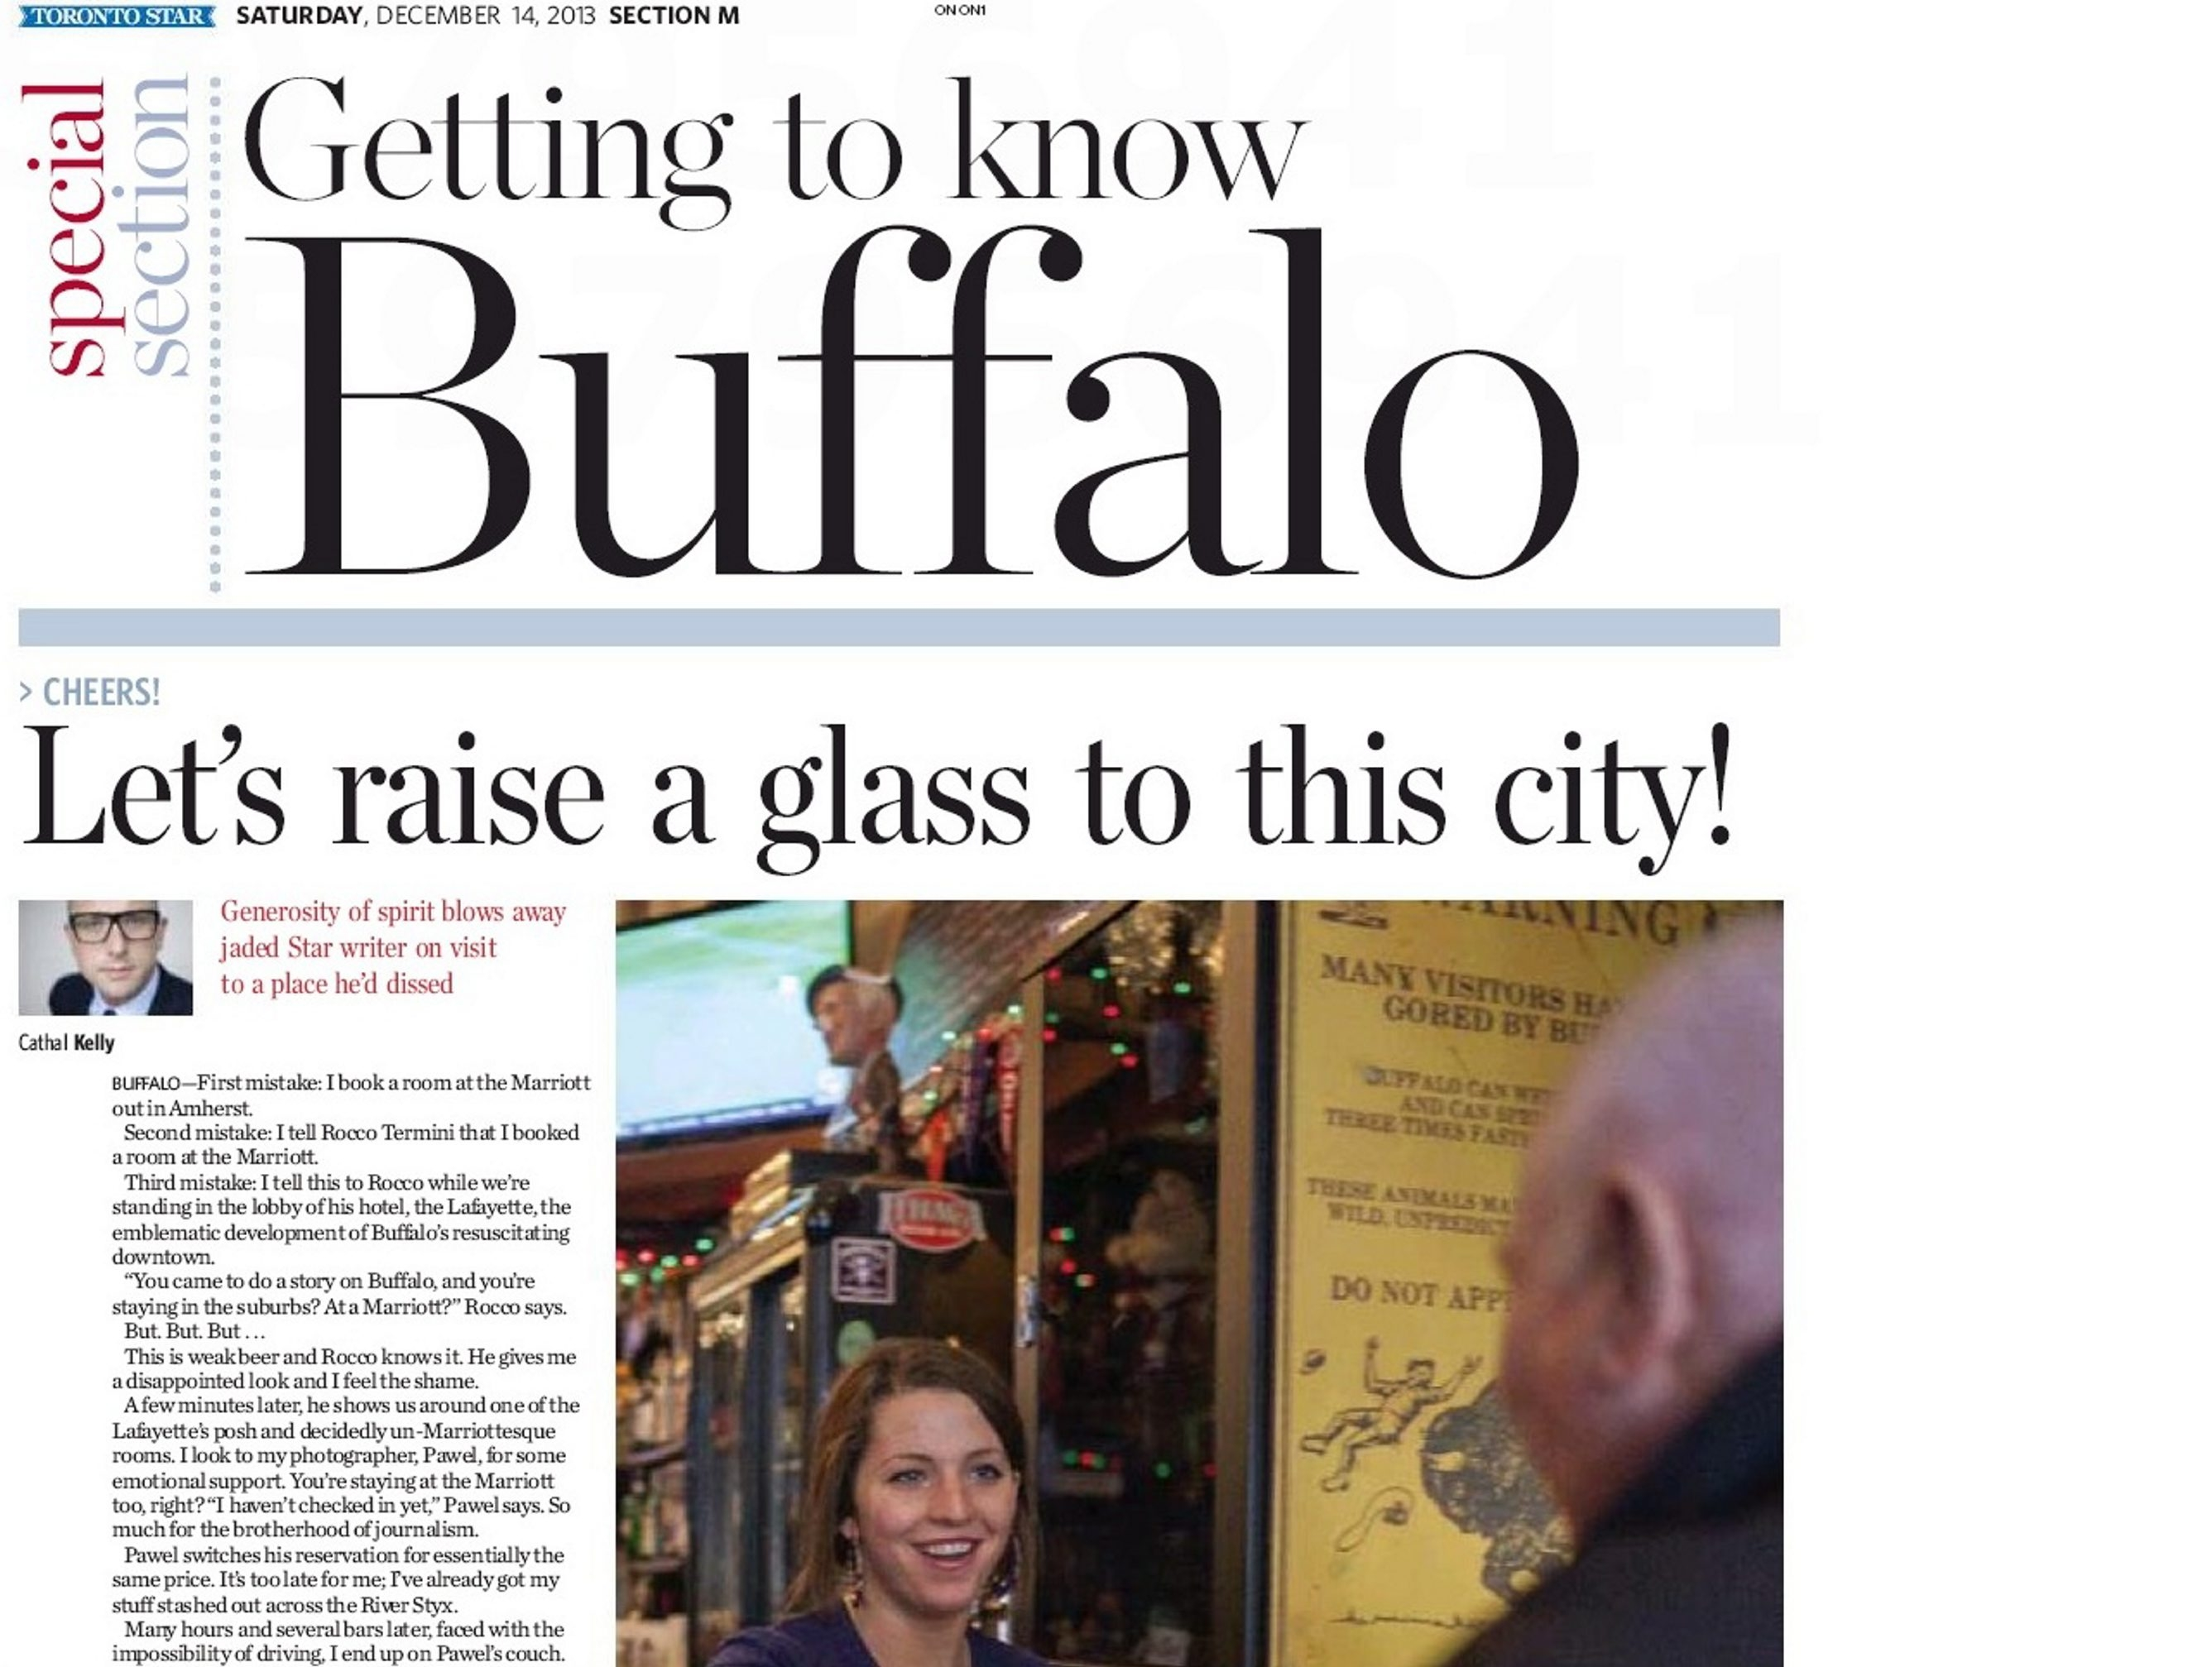 Cathal Kelly's lead story in today's Toronto Star special section, as he rediscovers Buffalo, a place he had dissed in the past.